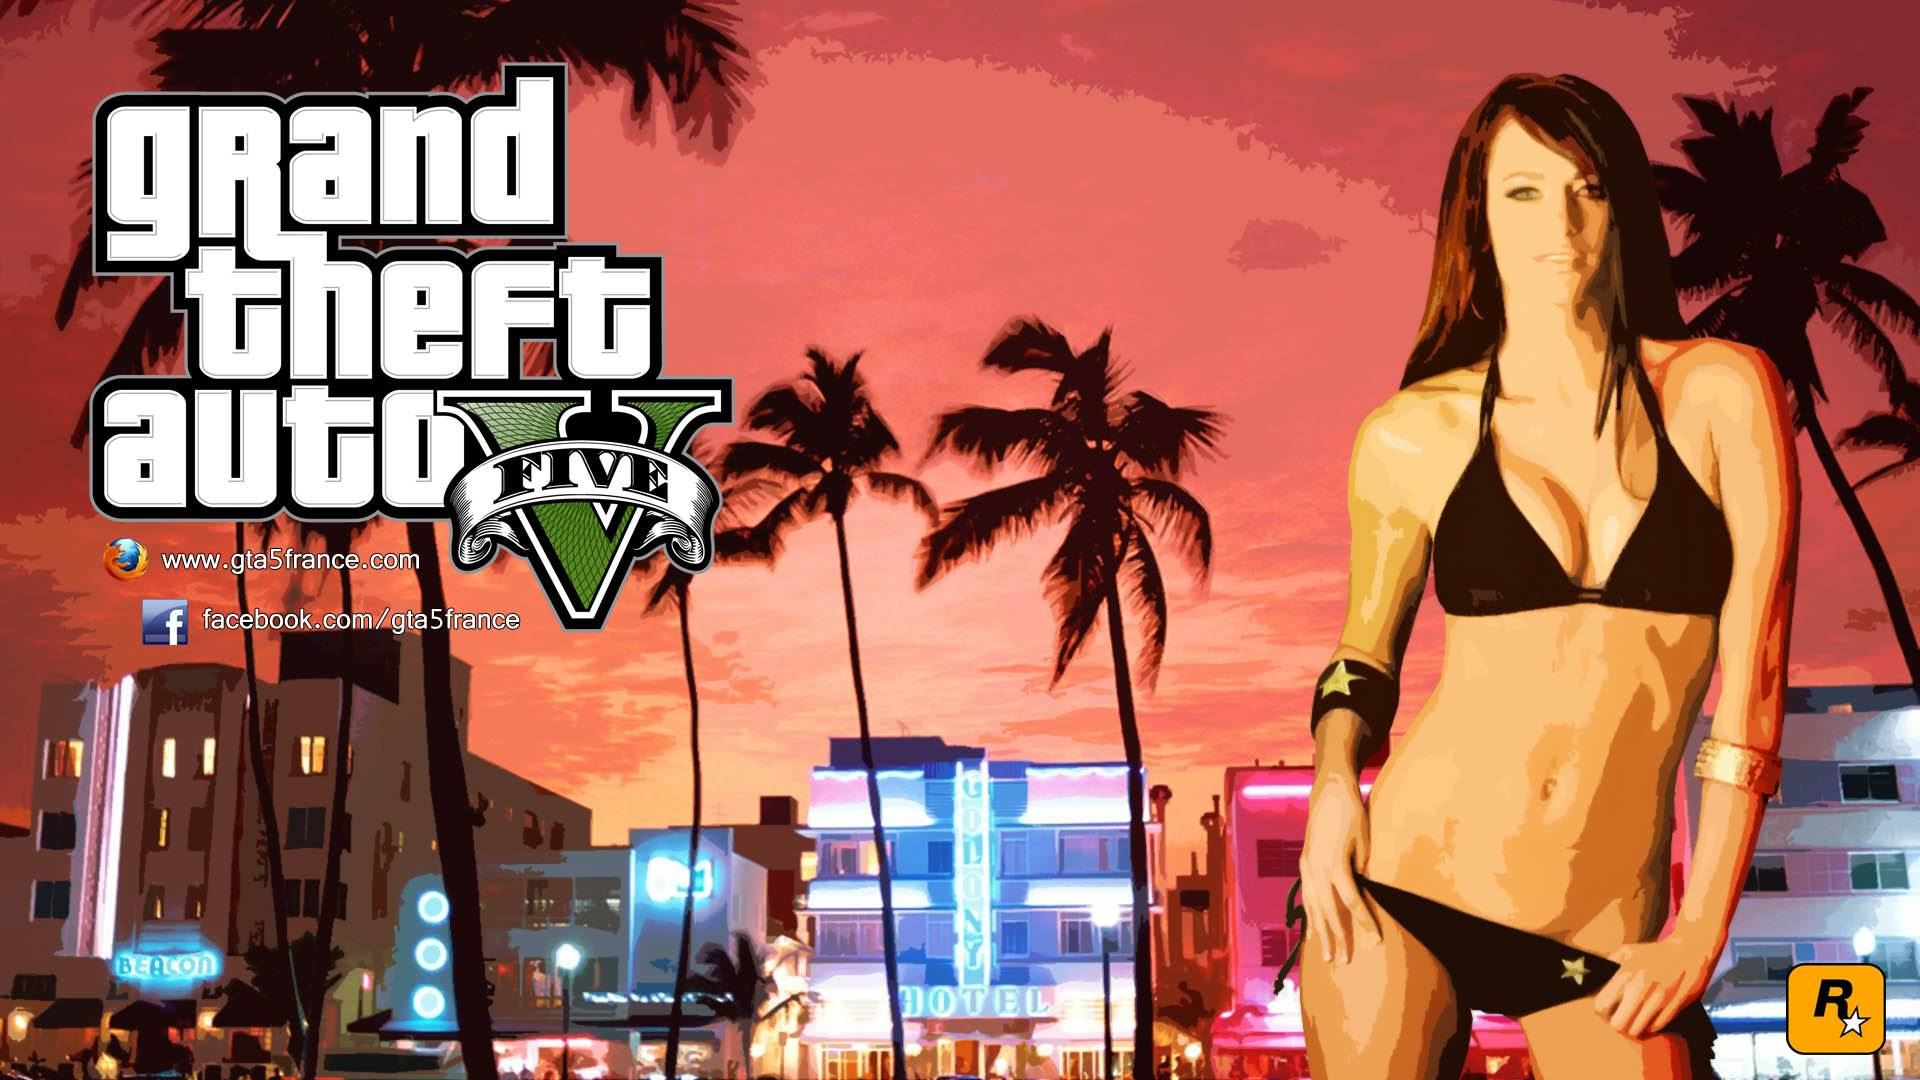 Wallpapers for GTA V app for ios  Review  Download  GTA  HD Wallpapers Download  GTA  HD Wallpapers  GTA V Wallpaper  Download 1920x1080